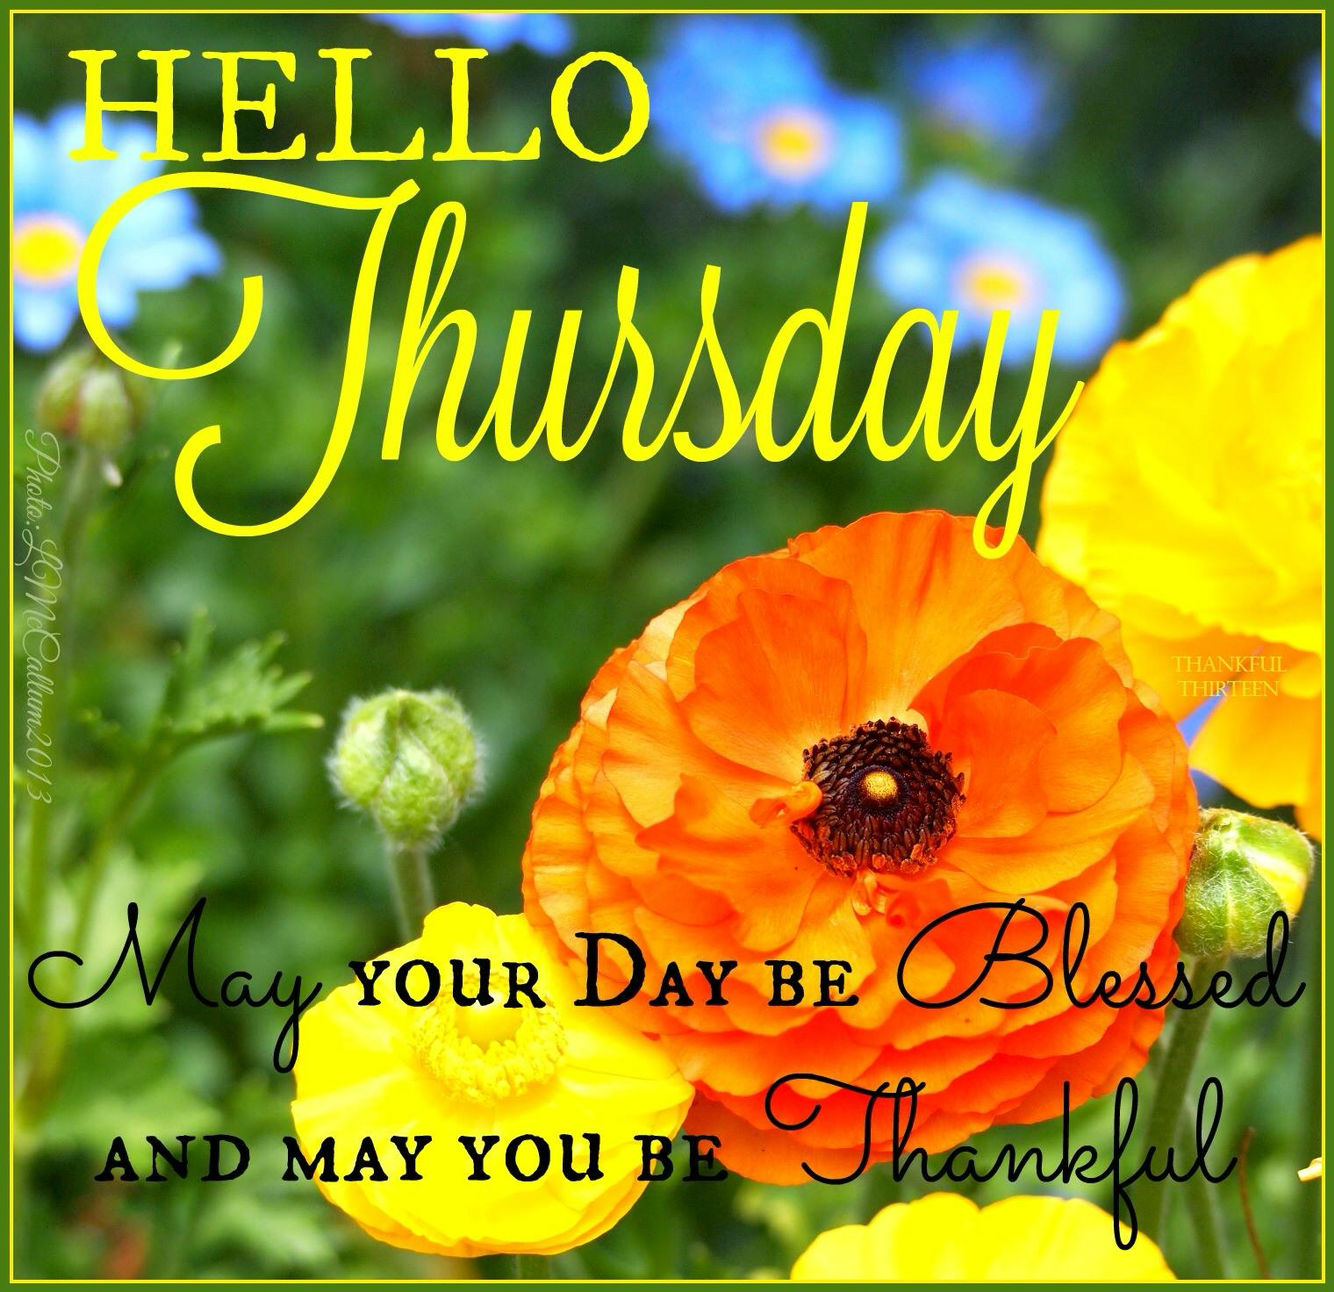 Hello Thursday May Your Day Be Blessed Pictures Photos And Images